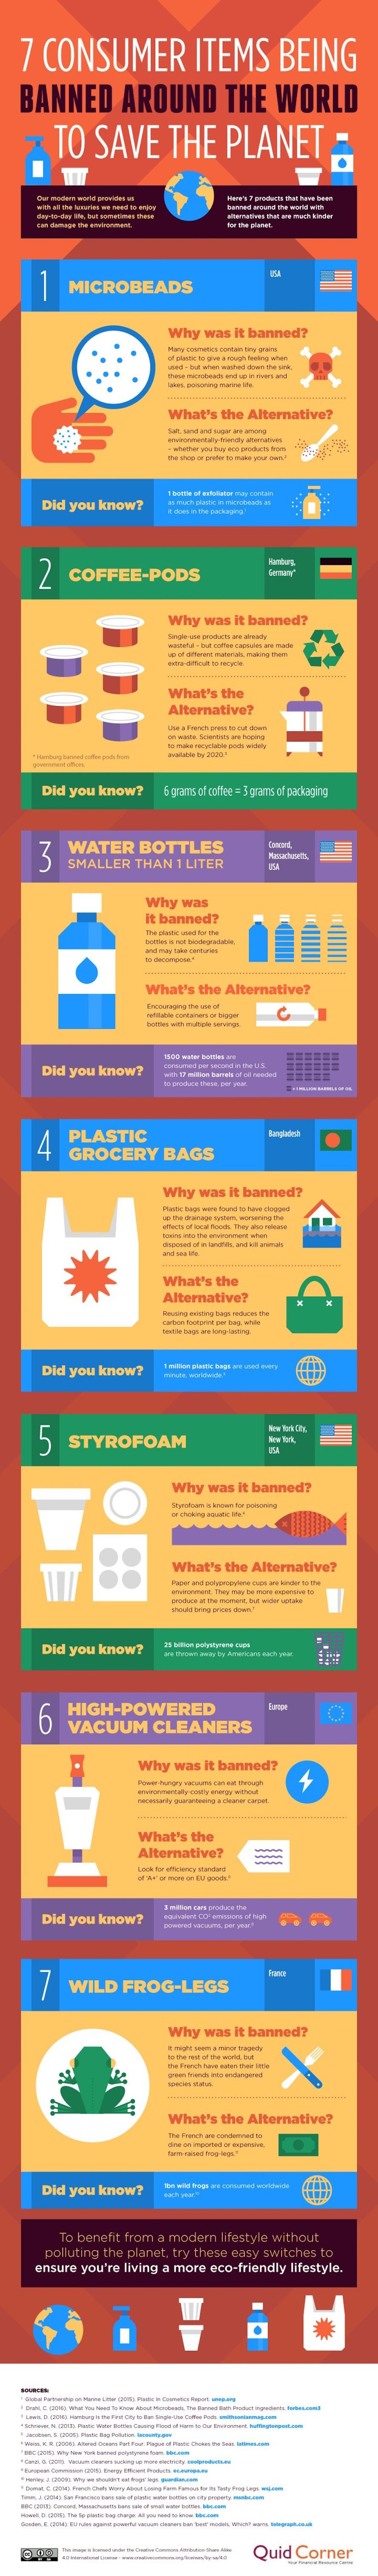 Quid Corner, infographic, reader submitted content, microbeads, plastic bags, plastic bag ban, products banned to save the environment, products banned to save the planet